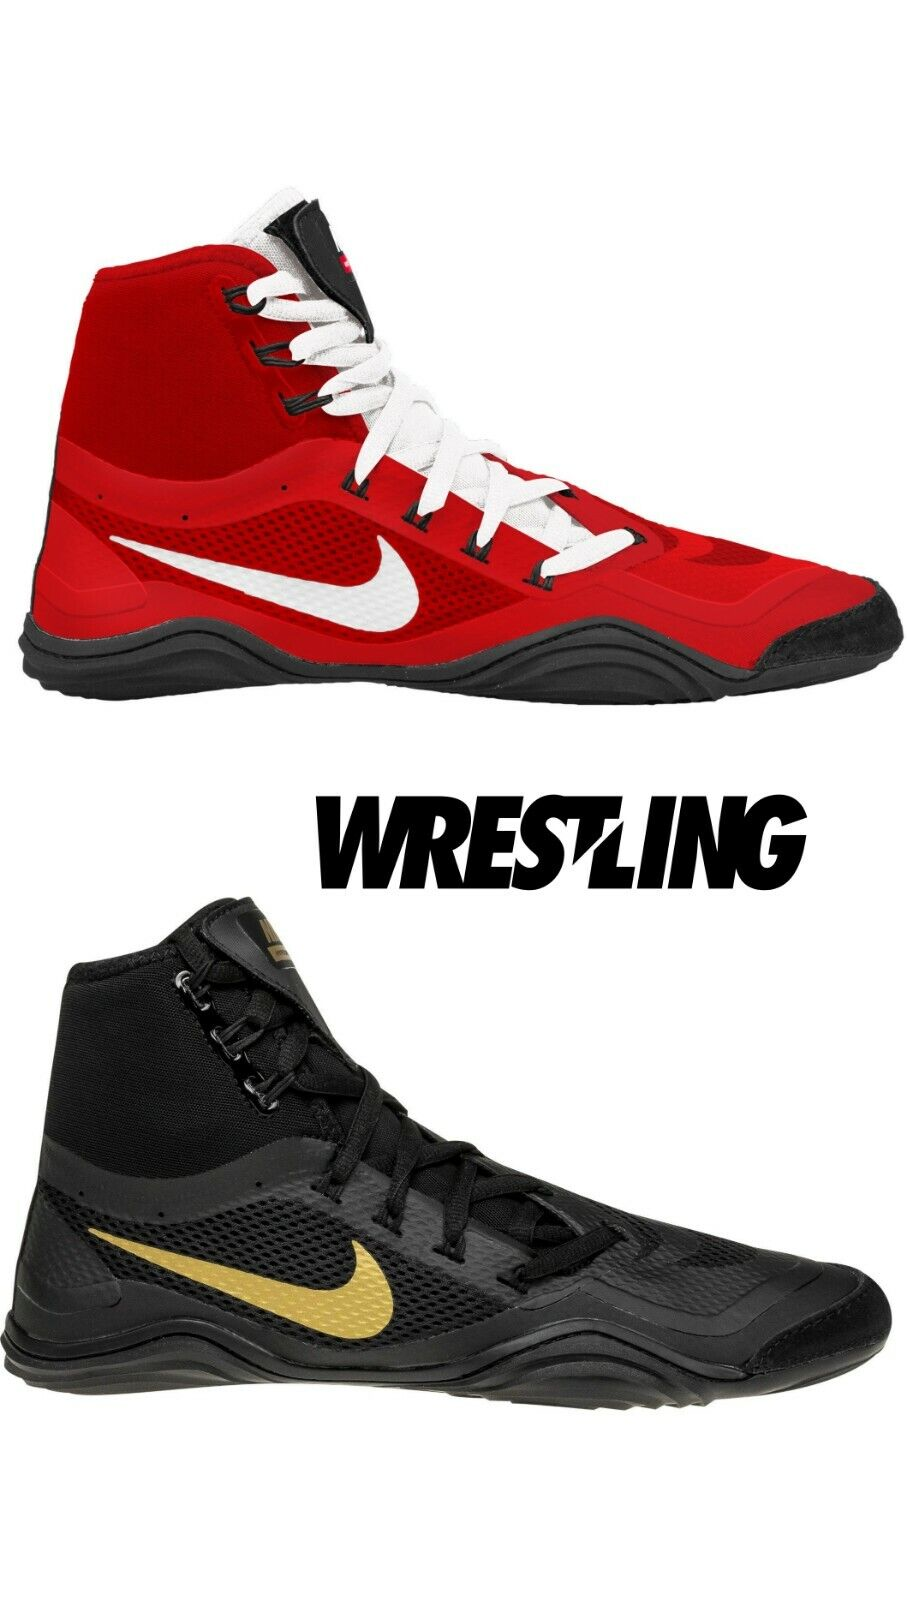 Nike Hypersweep Men/'s Wrestling Shoes Boxing MMA Combat Sports Shoes Boots Black